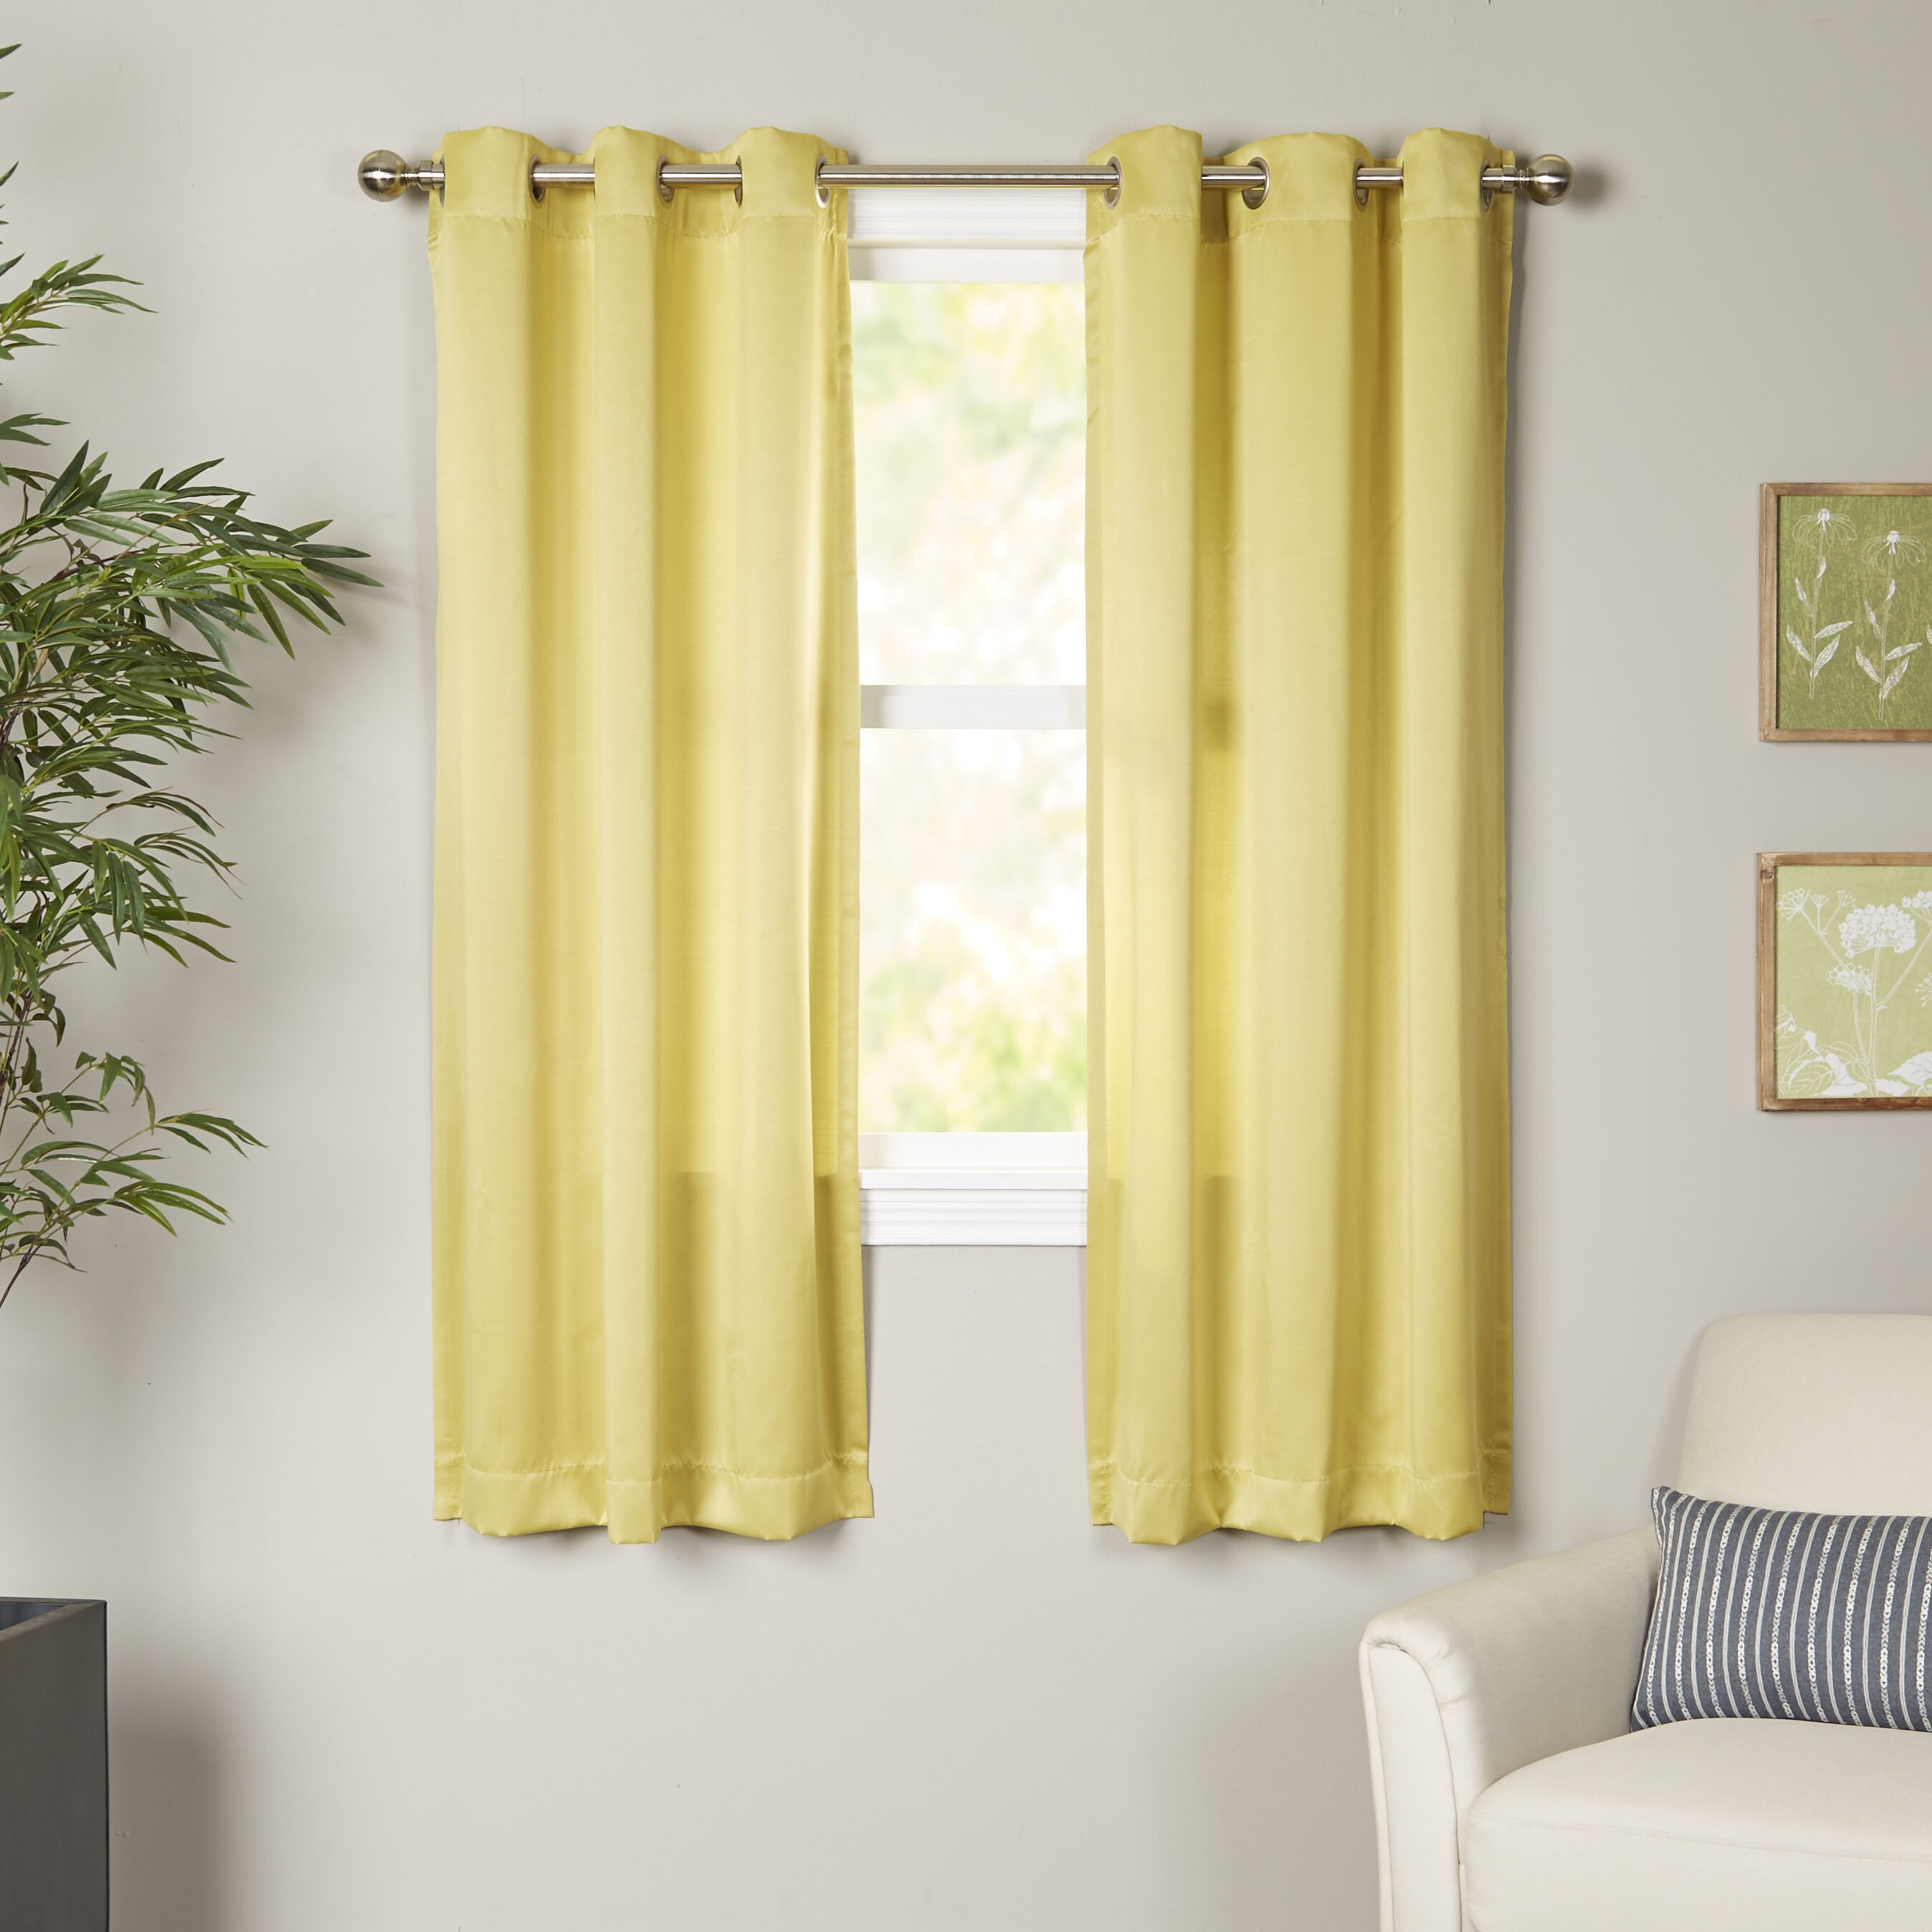 Wayfair Basics Wayfair Basics Grommet Single Curtain Panel Amp Reviews Wayfair